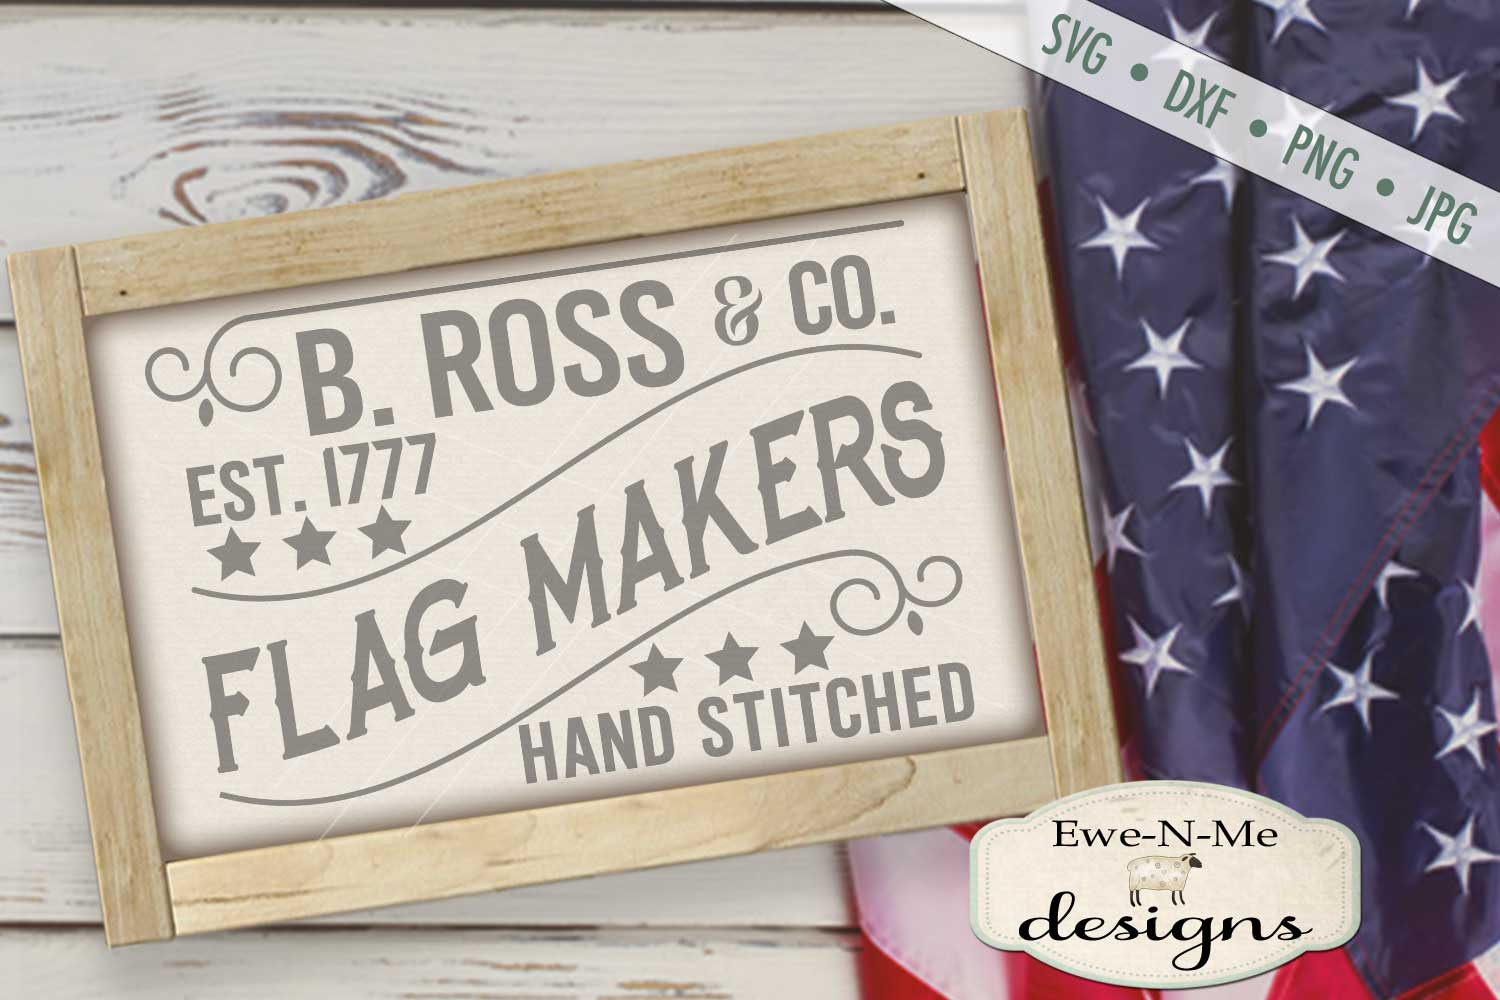 B Ross Flag Makers Sign Design SVG DXF Files example image 1